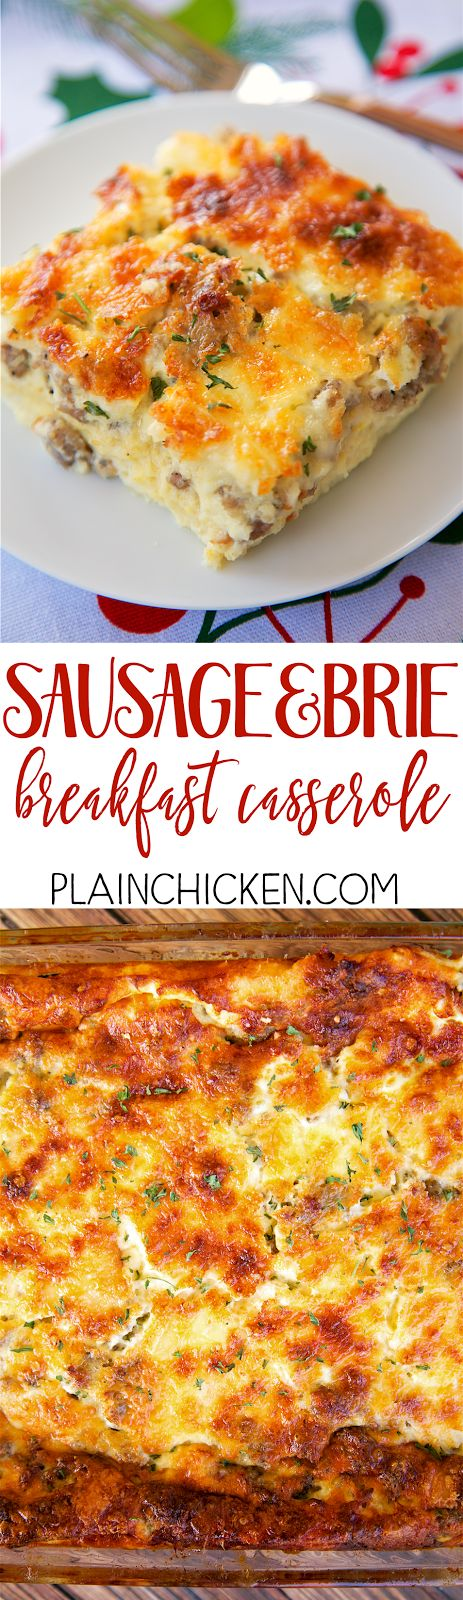 Sausage and Brie Breakfast Casserole - SO amazing! Make this the night before and bake in the morning. Sausage, brie, parmesan, white bread, eggs, whipping cream, milk, dry mustard, salt. This is our favorite breakfast casserole. A MUST for Christmas morning!